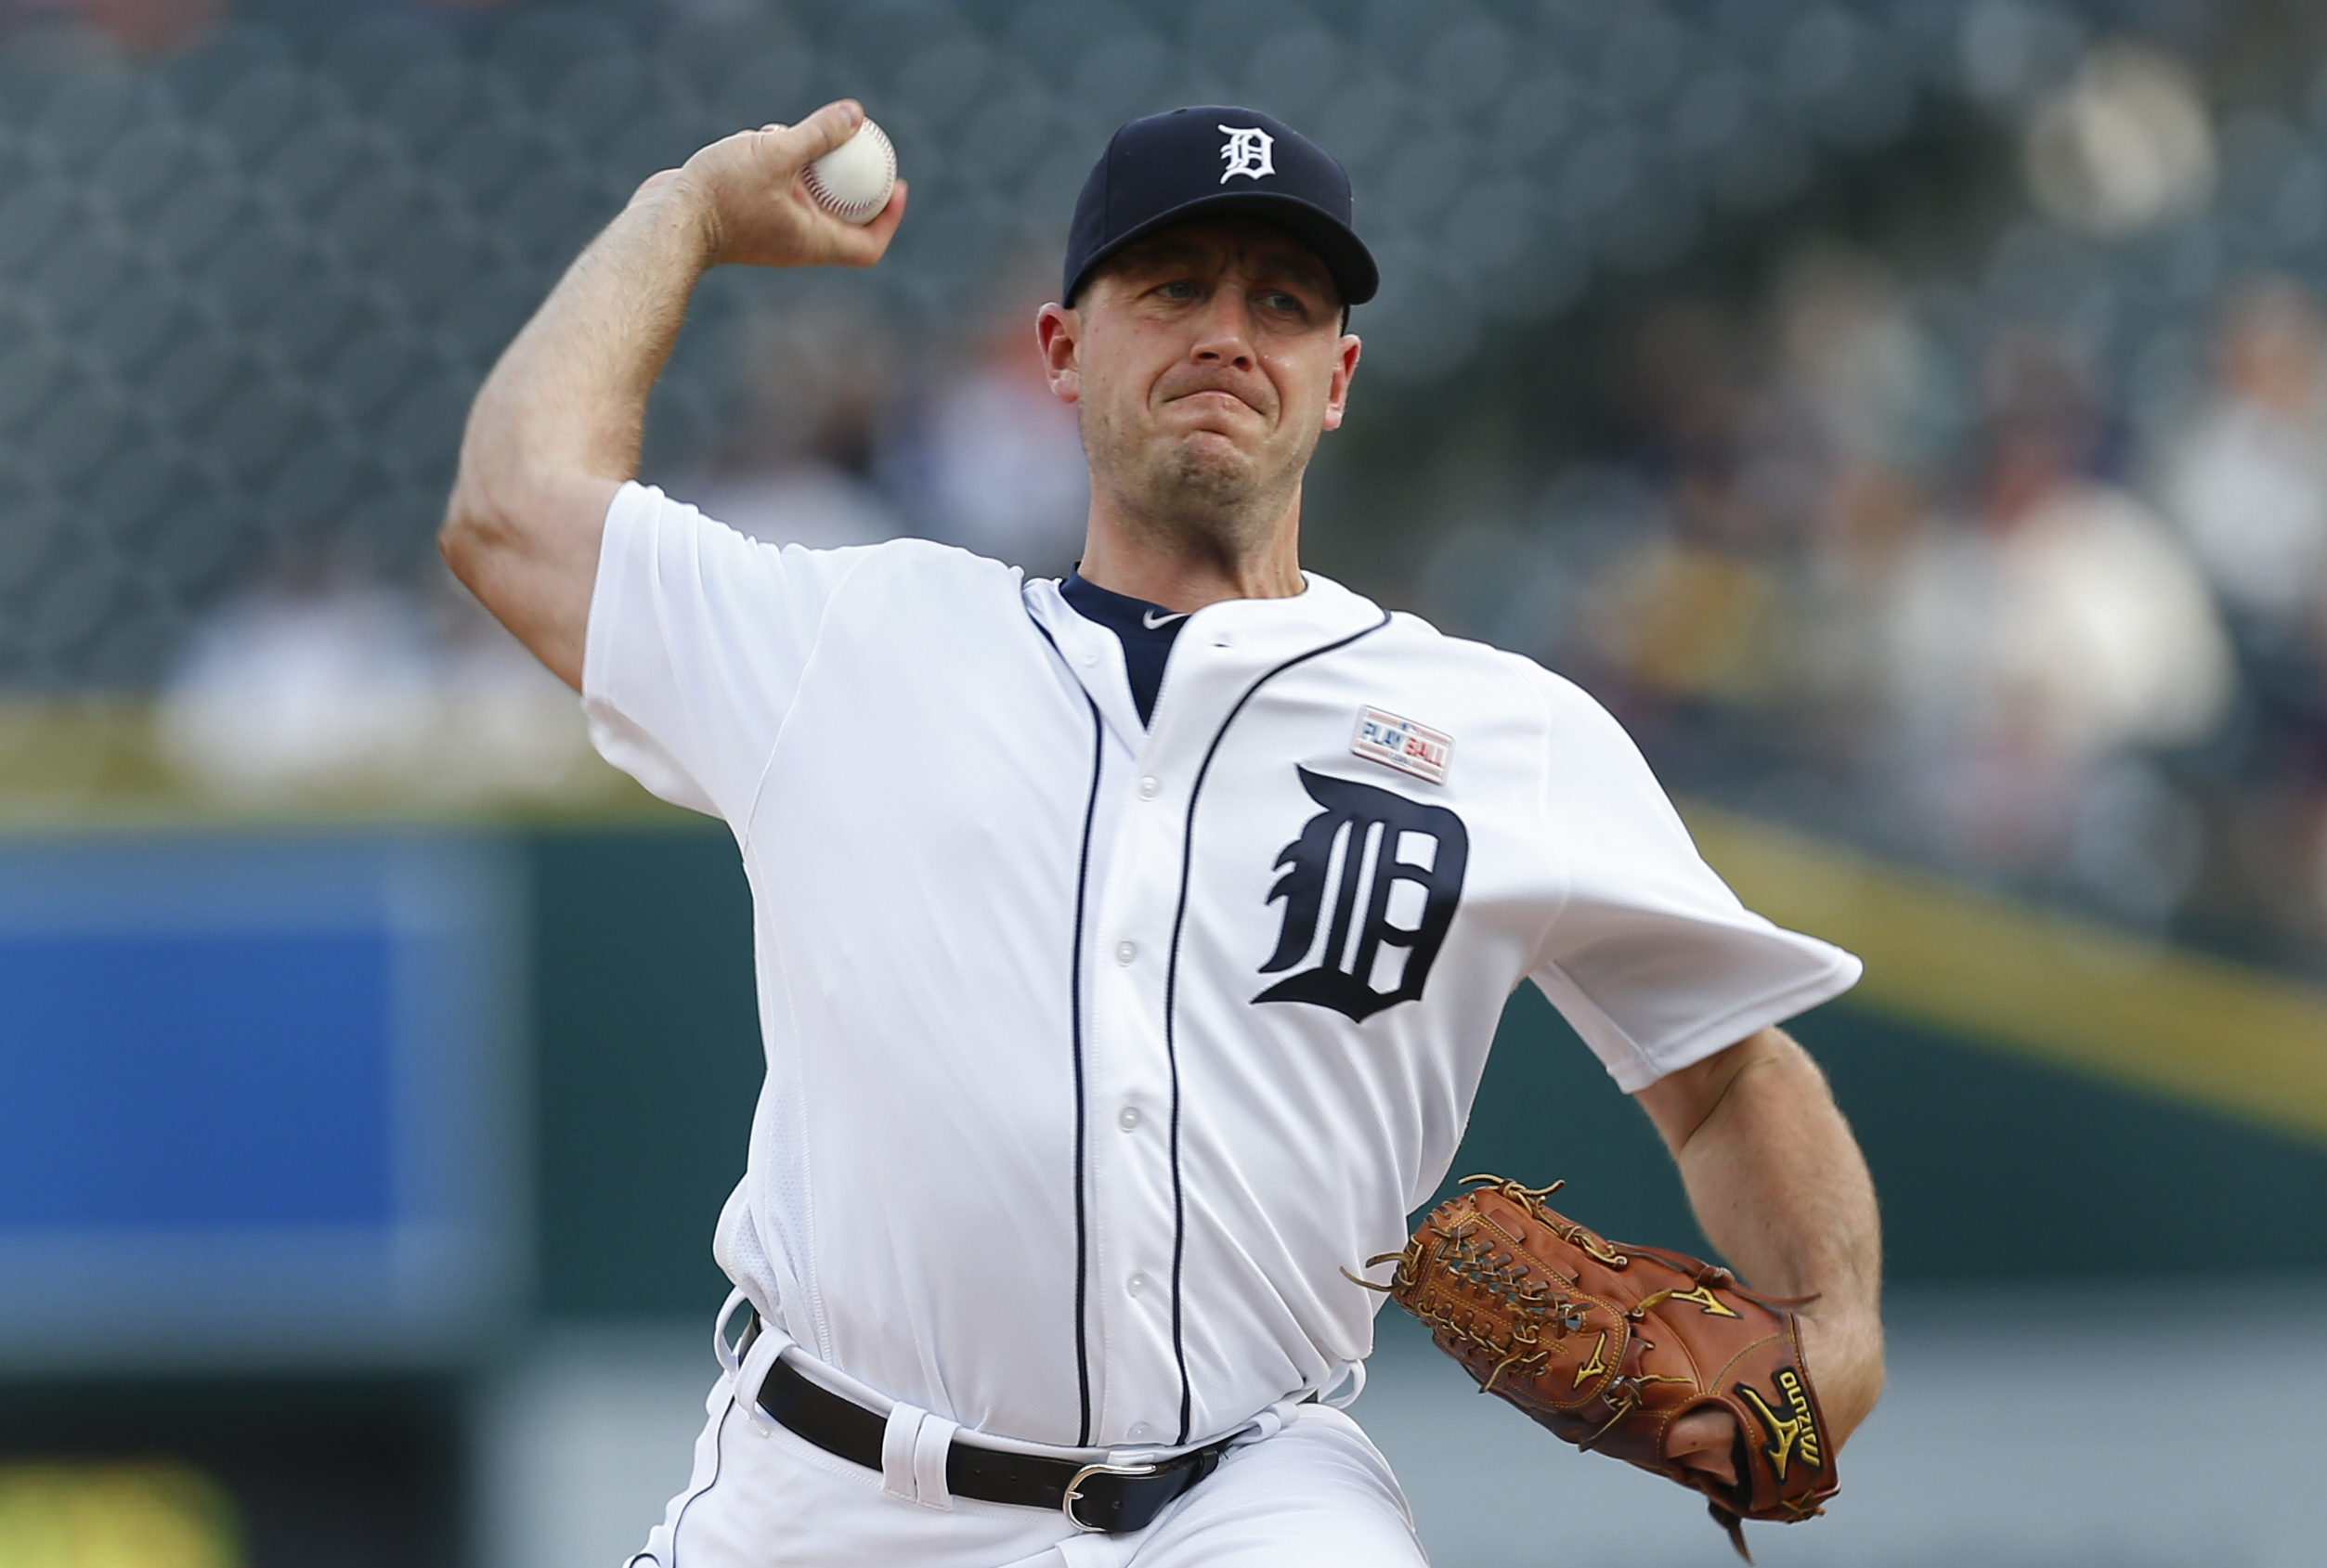 FILE - In this May 16, 2016, file photo, Detroit Tigers pitcher Jordan Zimmermann throws against the Minnesota Twins during a baseball game in Detroit. Zimmermann has been activated from the disabled list and is scheduled to start Saturday, Sept. 10, agai